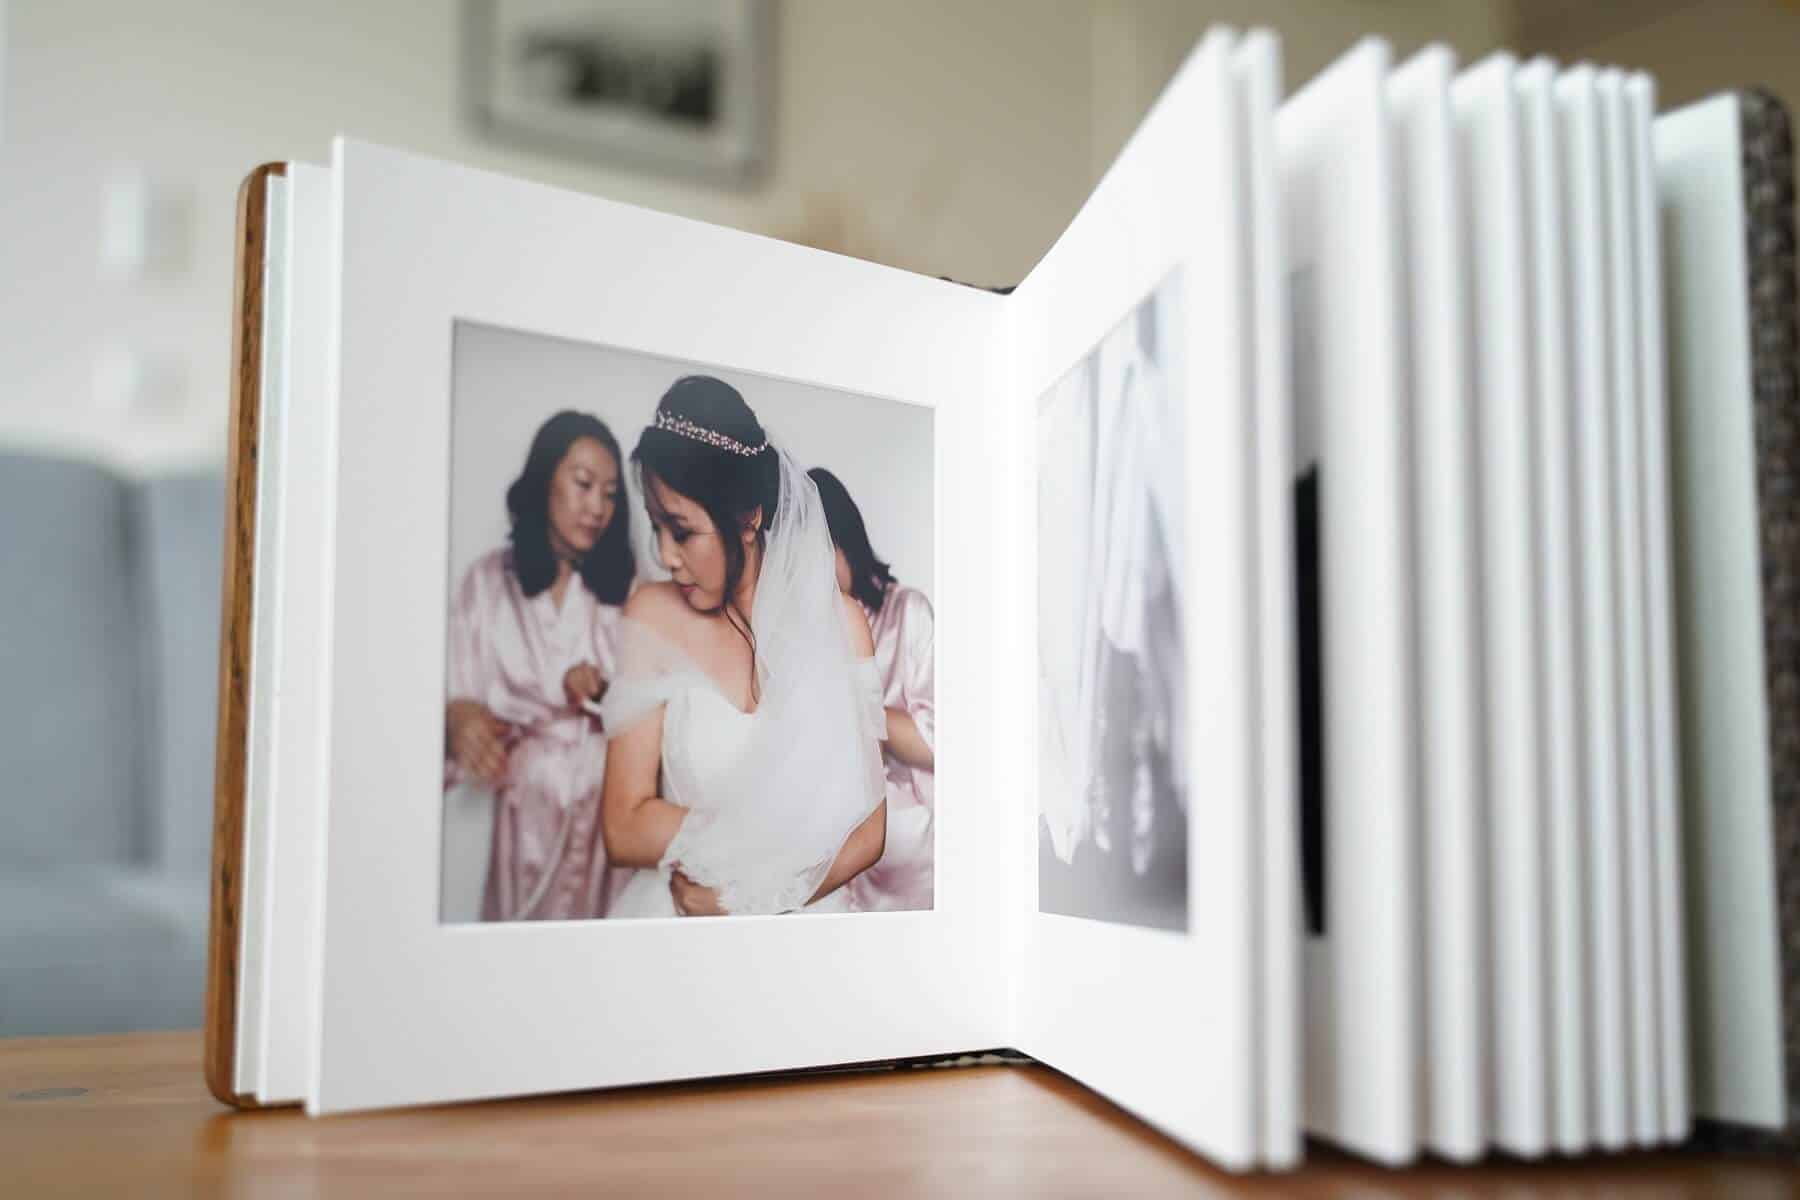 High quality photo albums for emotional memories